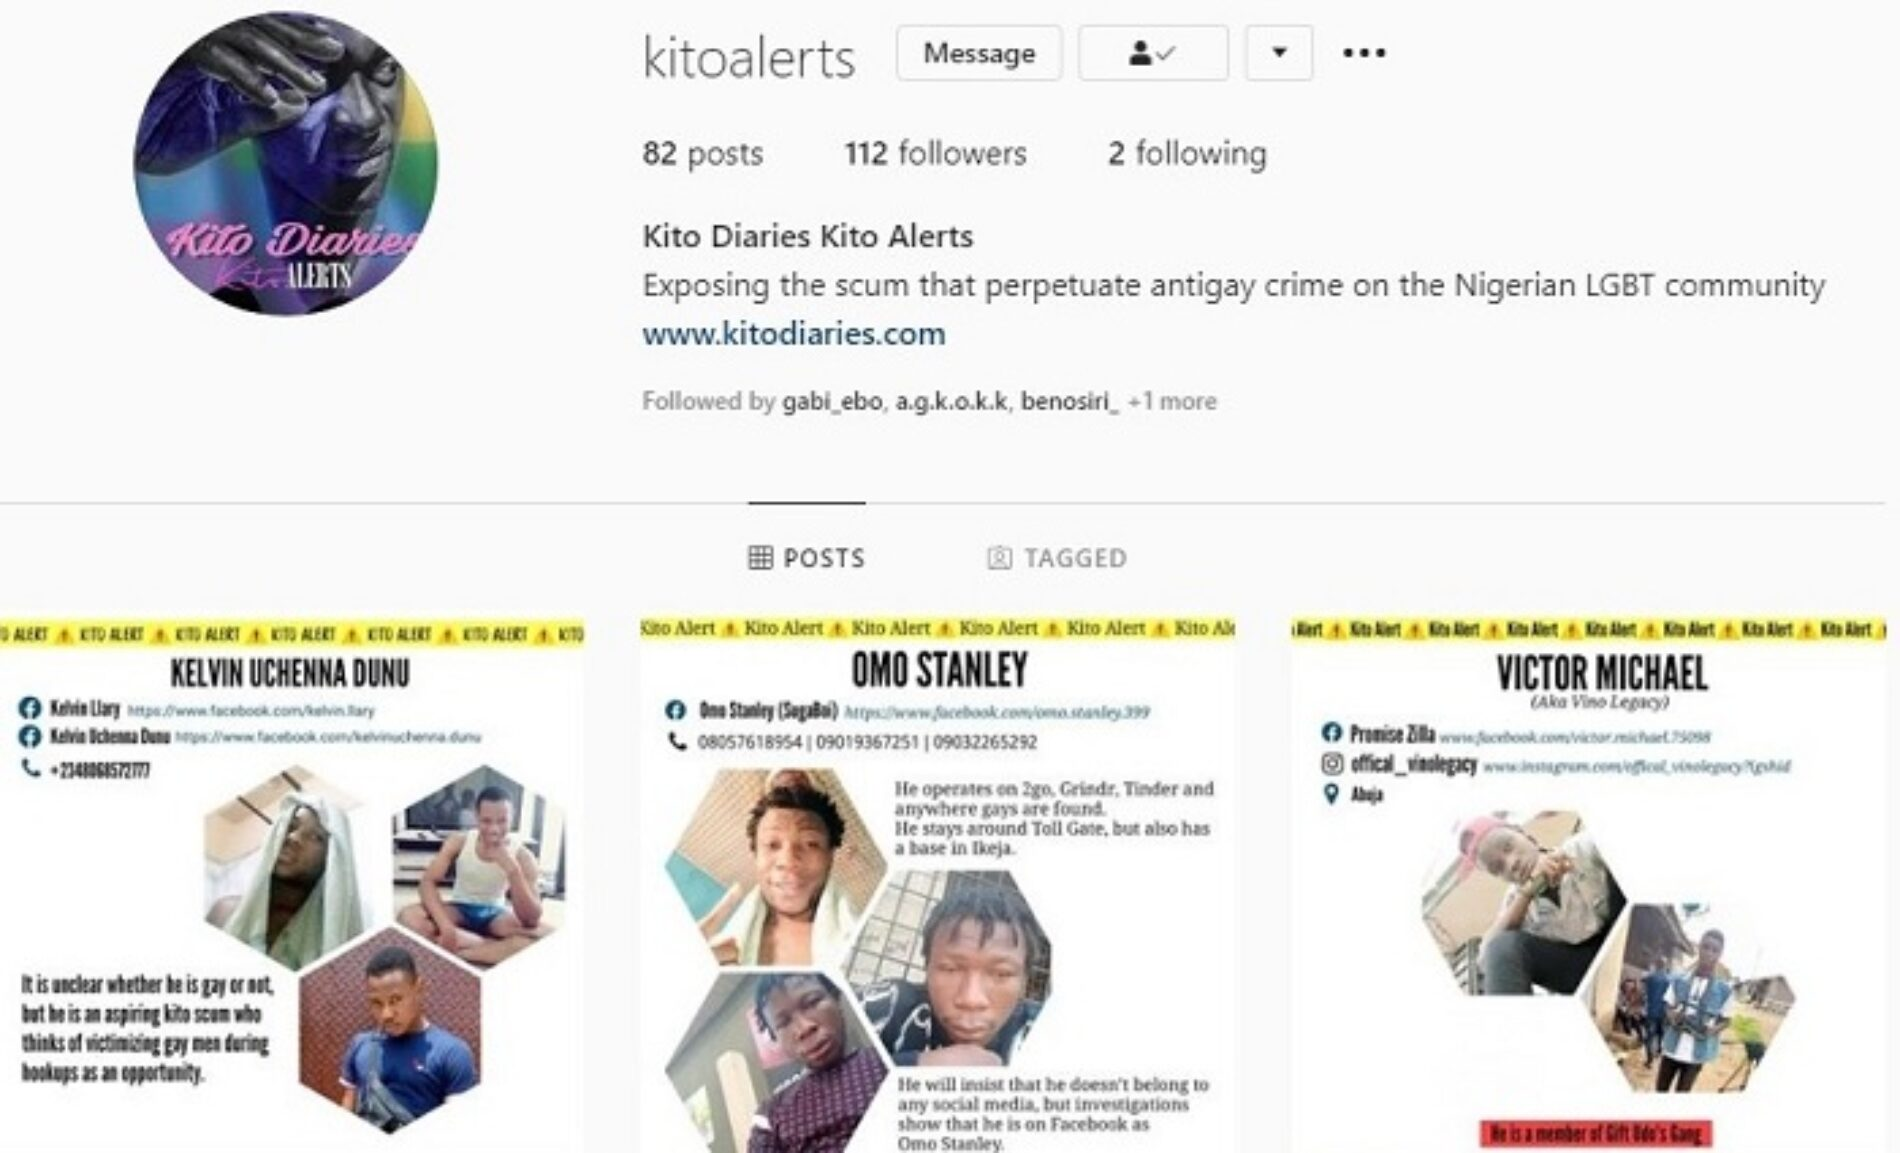 We Now Have Social Media Accounts Dedicated To Publishing Just Kito Alerts For Easier Access